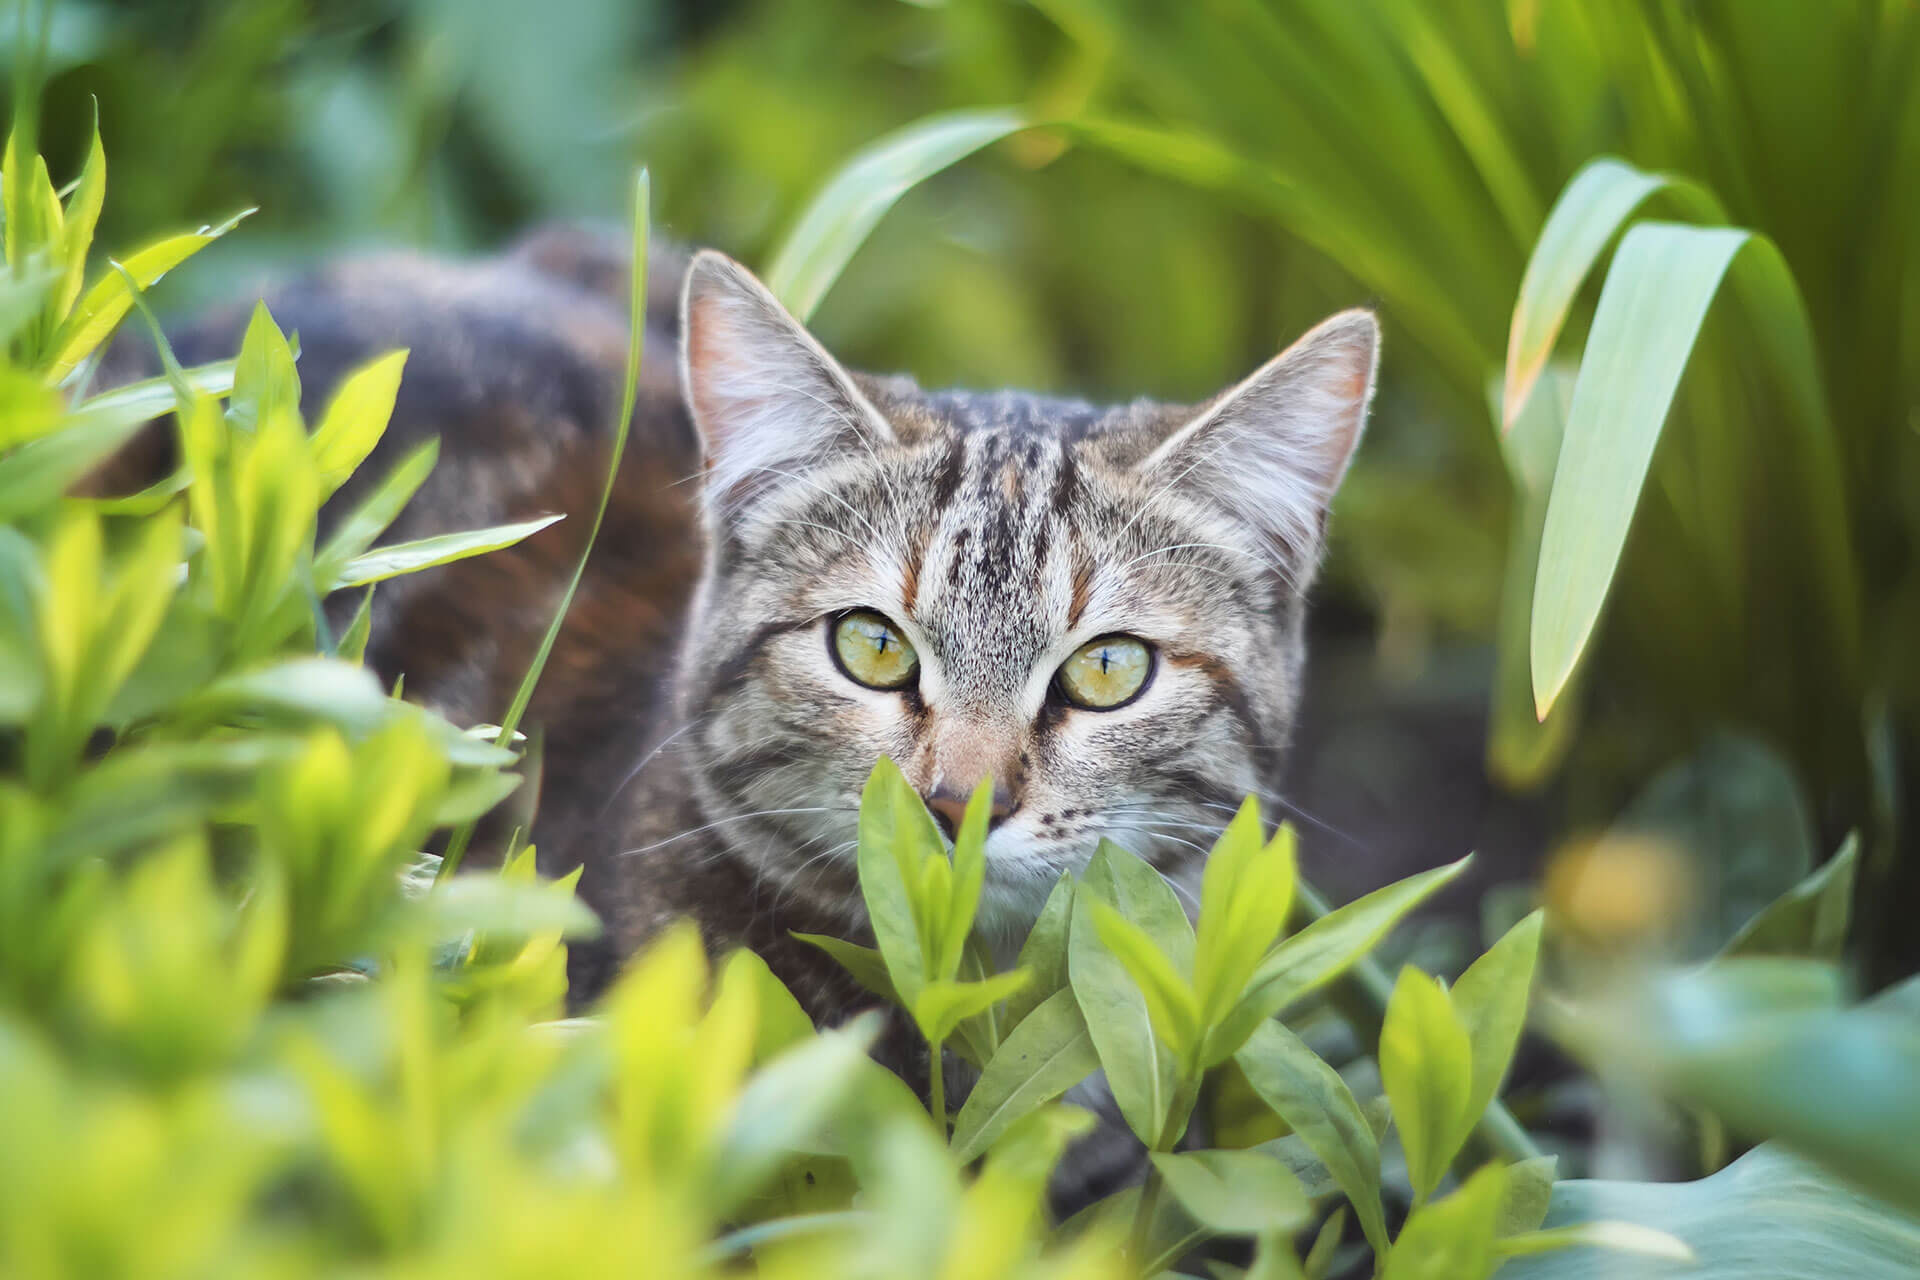 Caring for outdoor cats: How to keep them safe and healthy